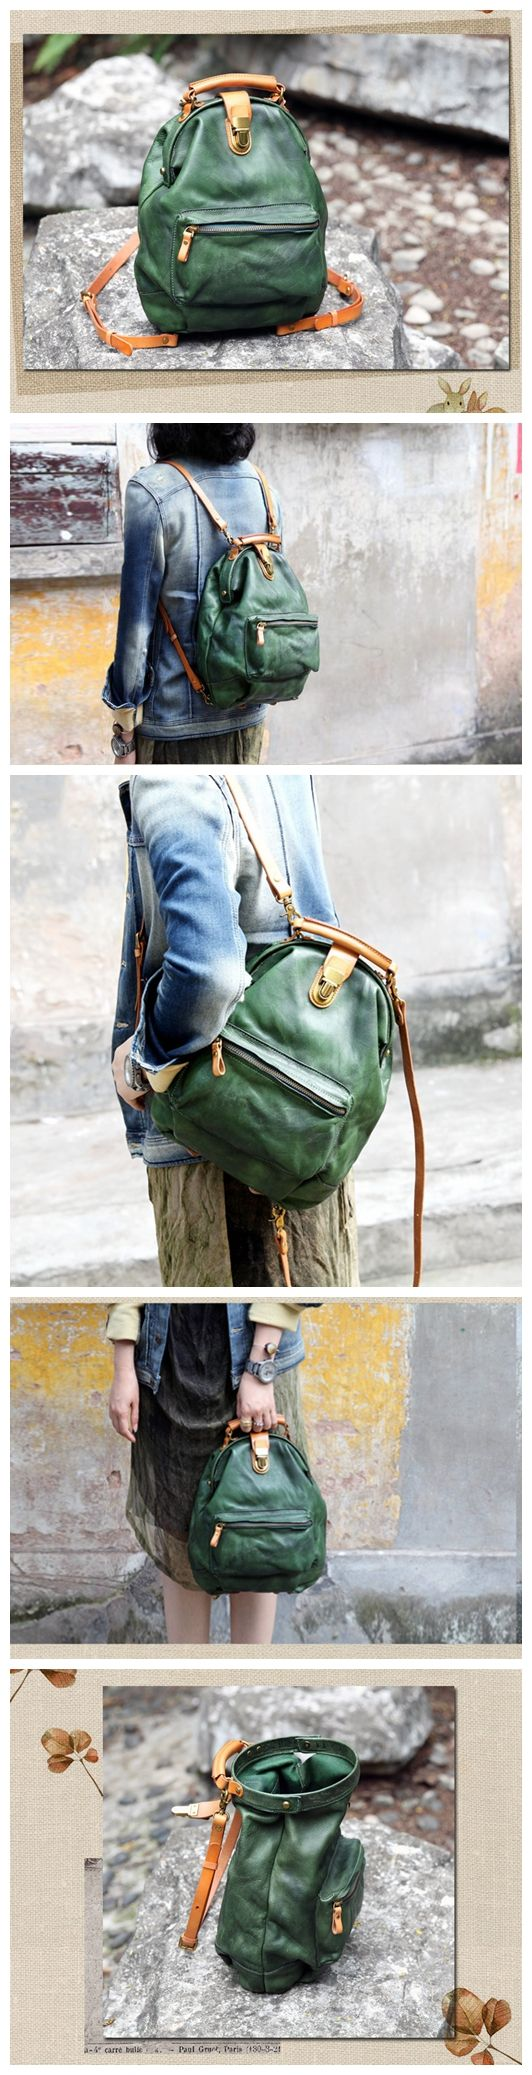 Handmade Genuine Leather Handbag Messenger Shoulder Bag Casual Backpack Rucksack Tote Bag Satchel 14107 Overview: Design: Vintage Leather Messenger Bag Casual Backpack In Stock: 4-5 days For Making Cu